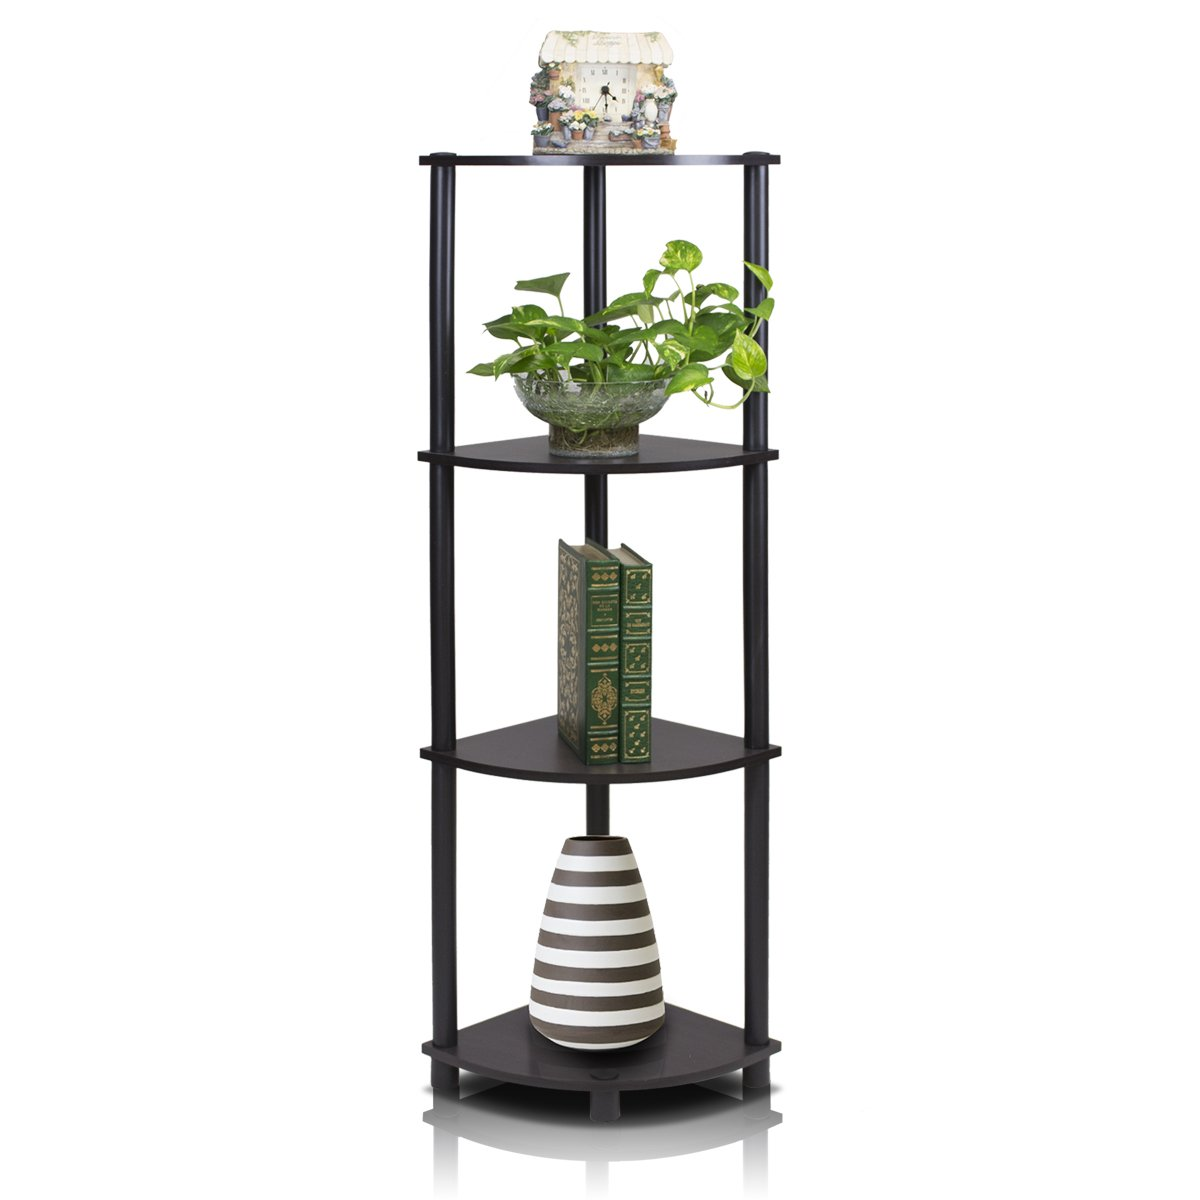 Furinno 12078 Ex/Bk Turn N Tube Multipurpose 4 Tier Corner Shelf, Espresso/Black by Furinno